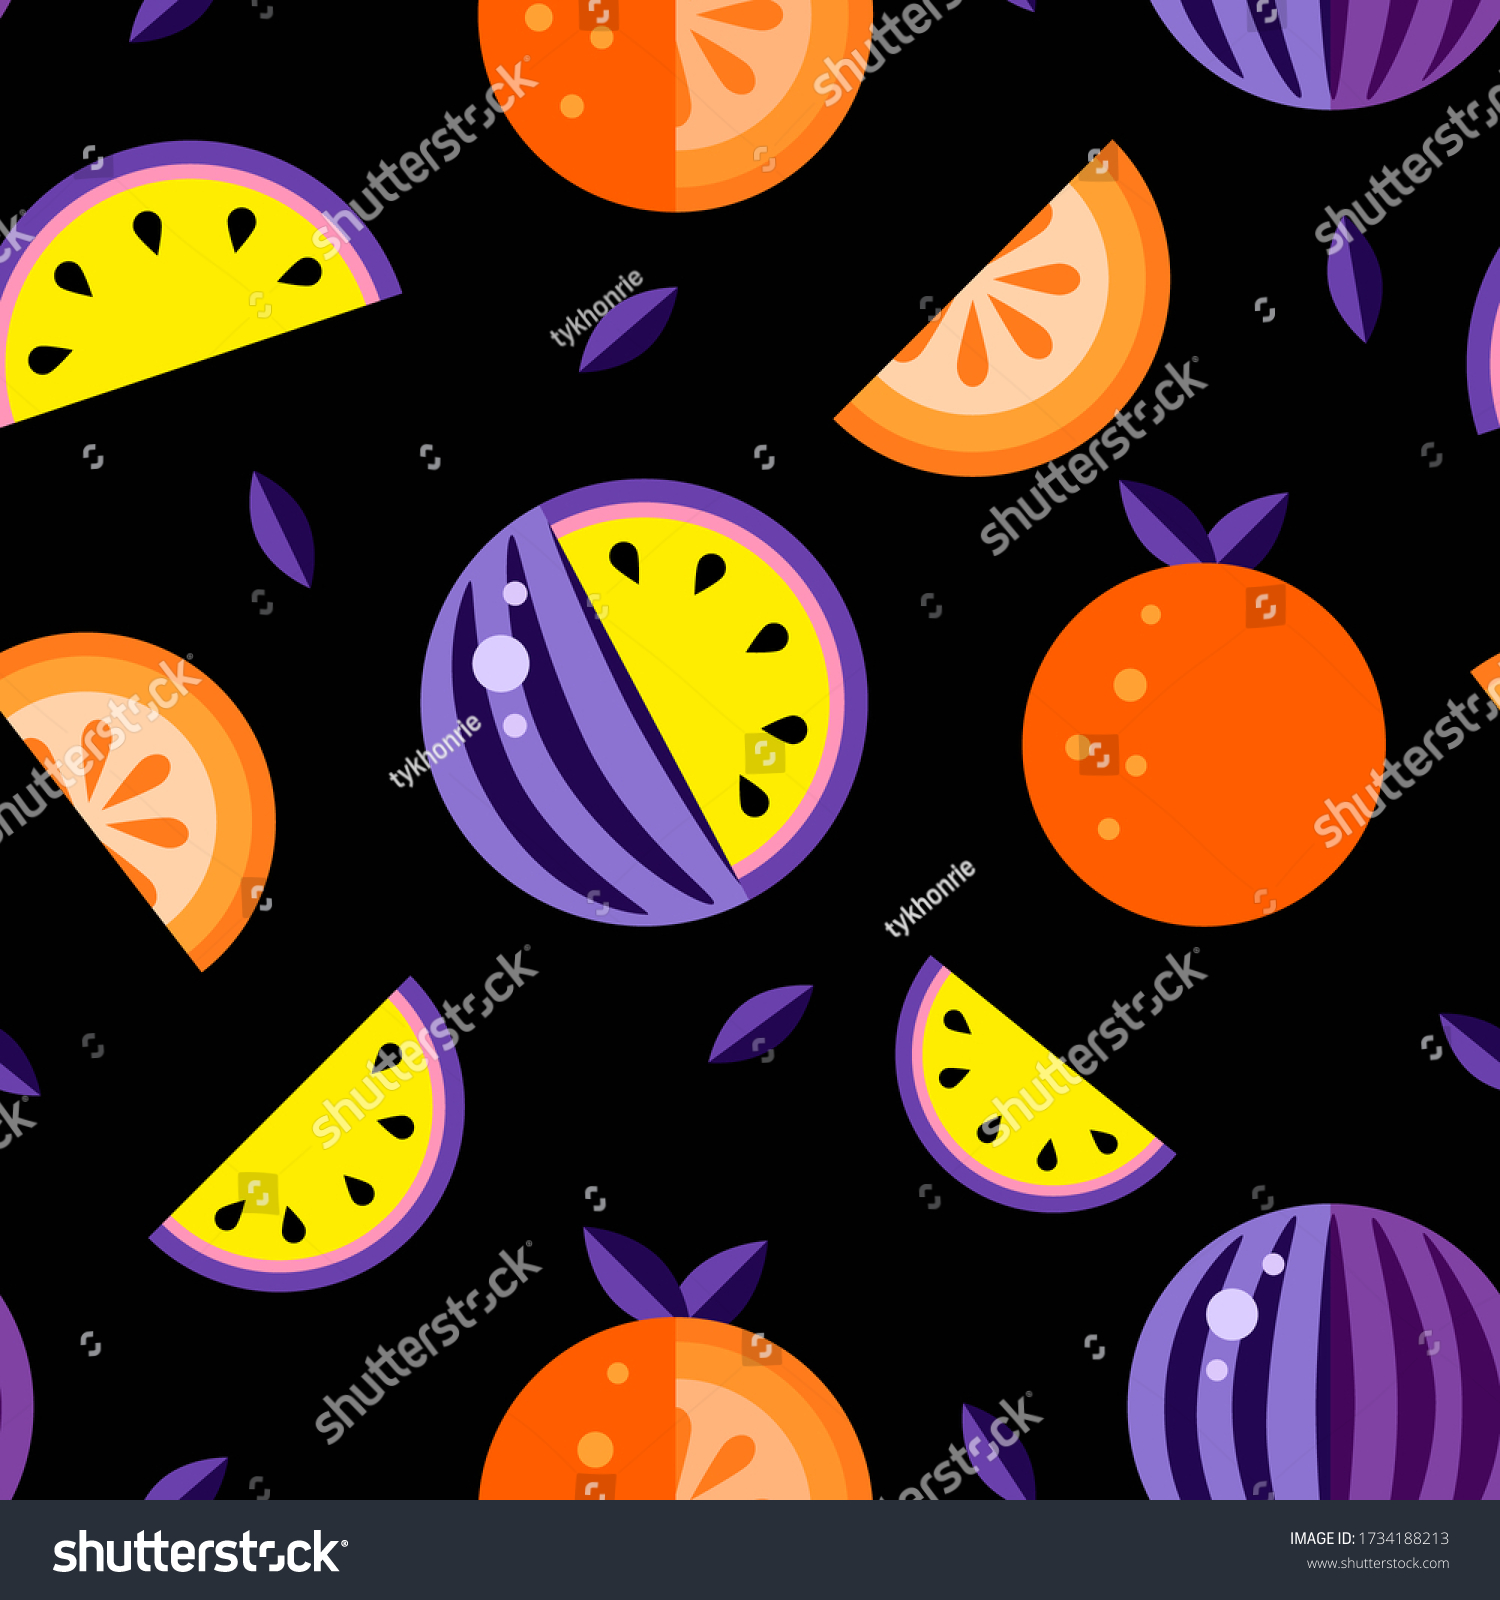 stock-photo-watermelon-orange-fruit-seam